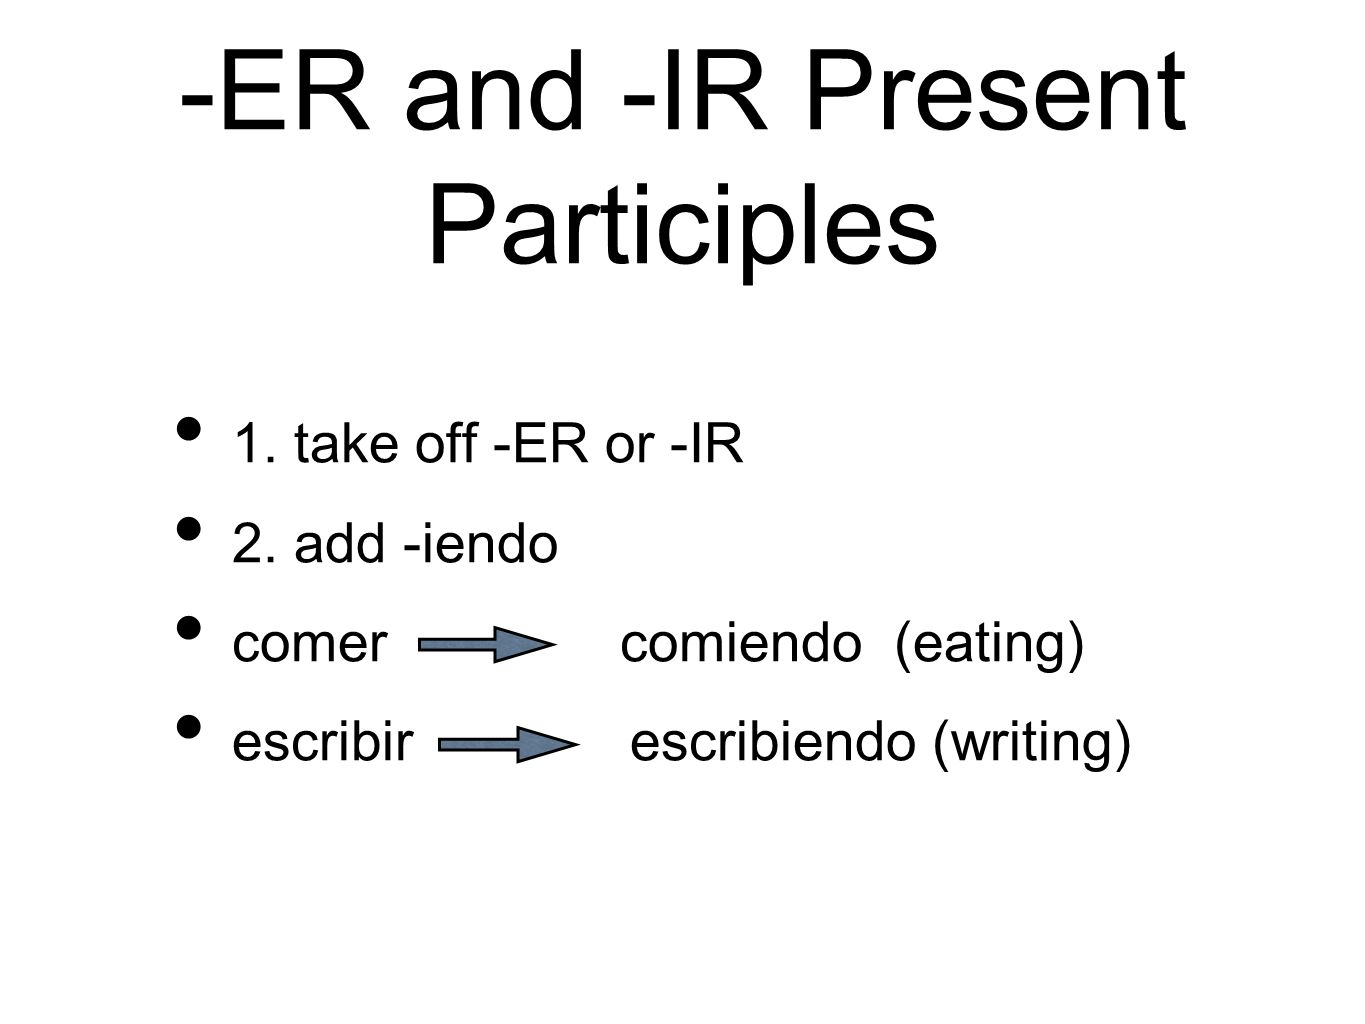 -ER and -IR Present Participles